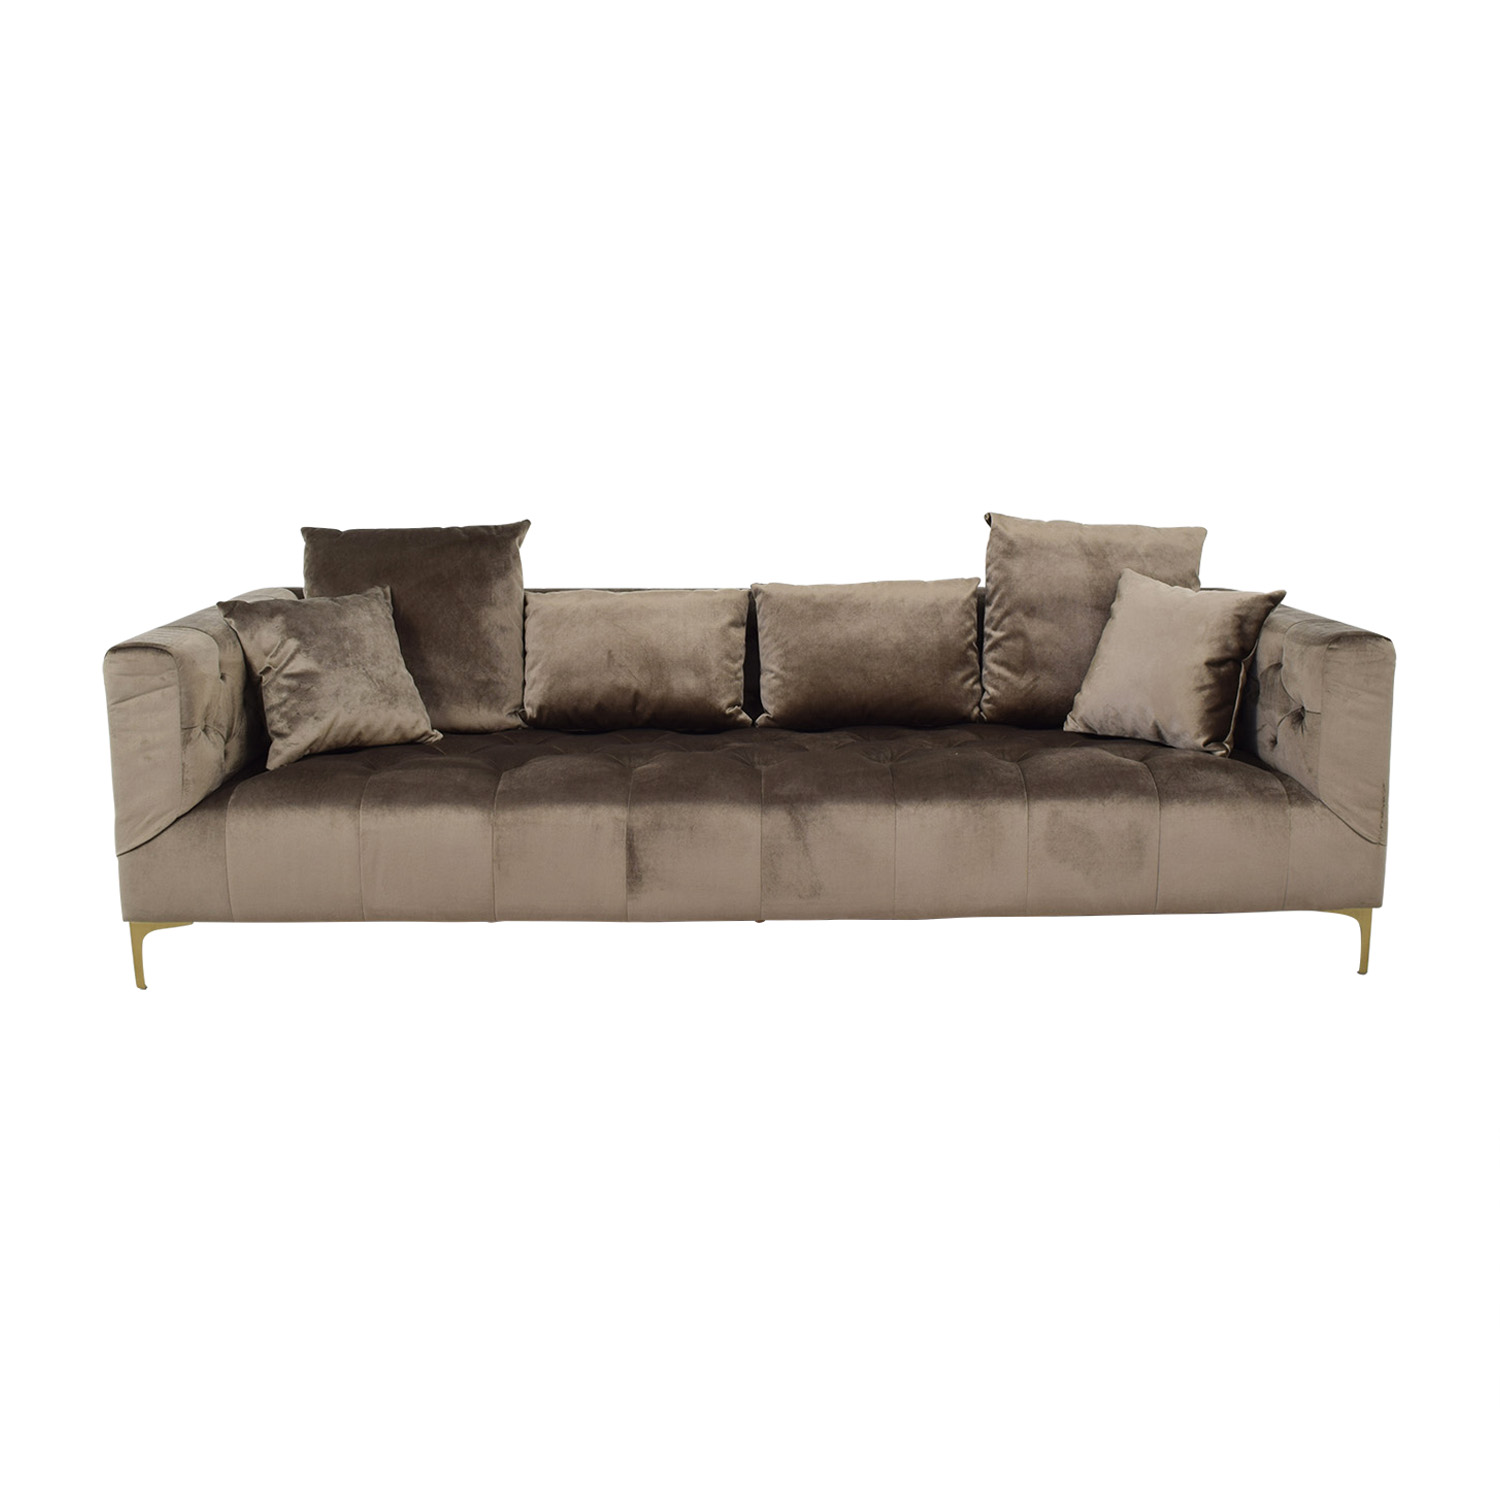 Interior Define Ms. Chesterfield Light Brown Tufted Sofa for sale